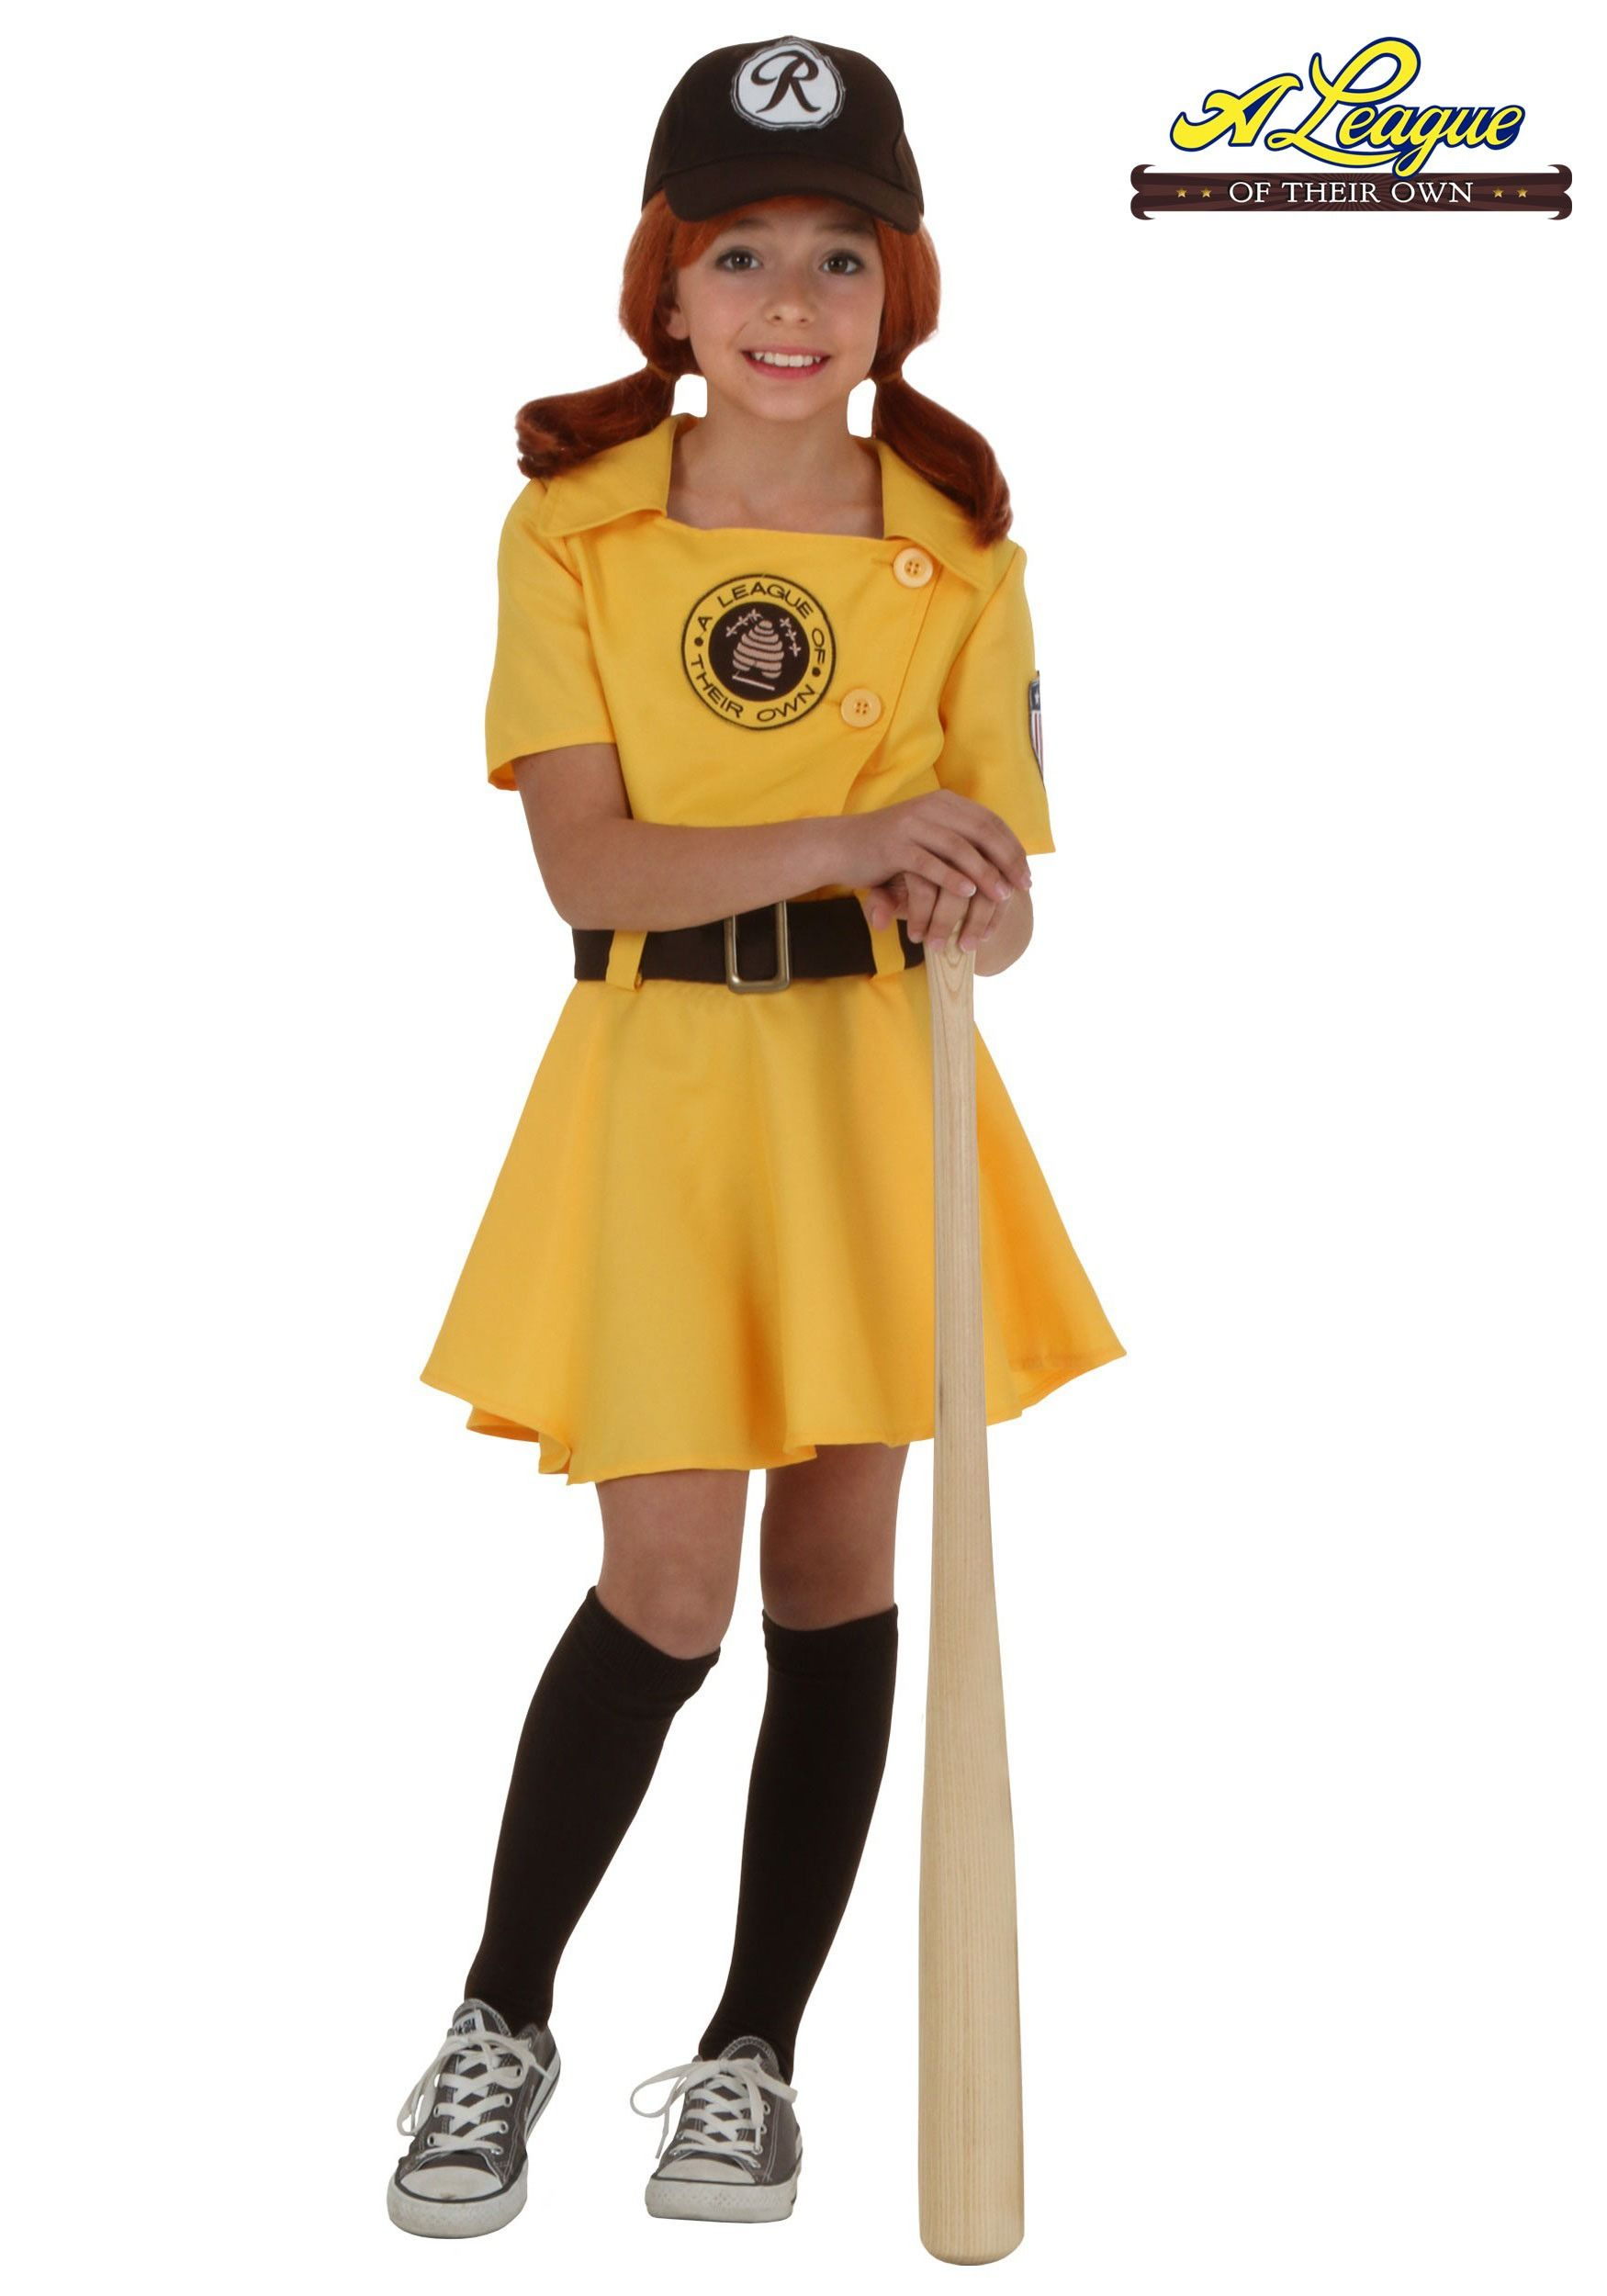 girls a league of their own kit costume | costumes | pinterest